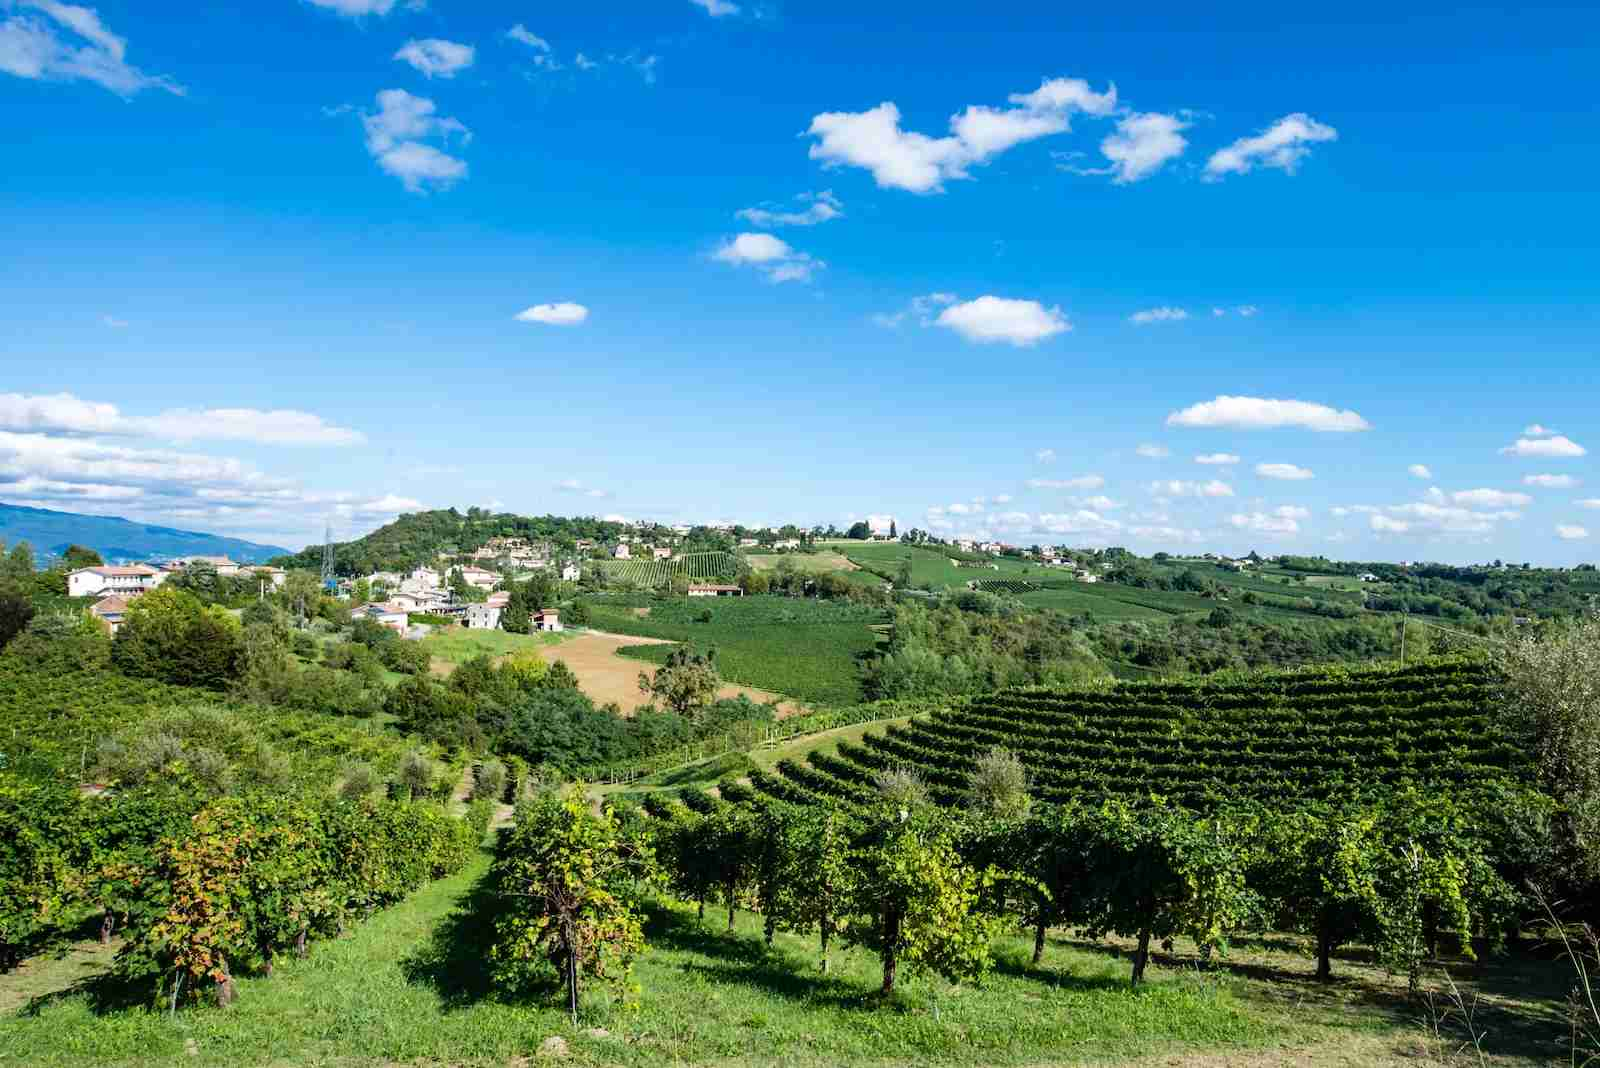 The Prosecco Road. (Photo by mTre/Shutterstock)